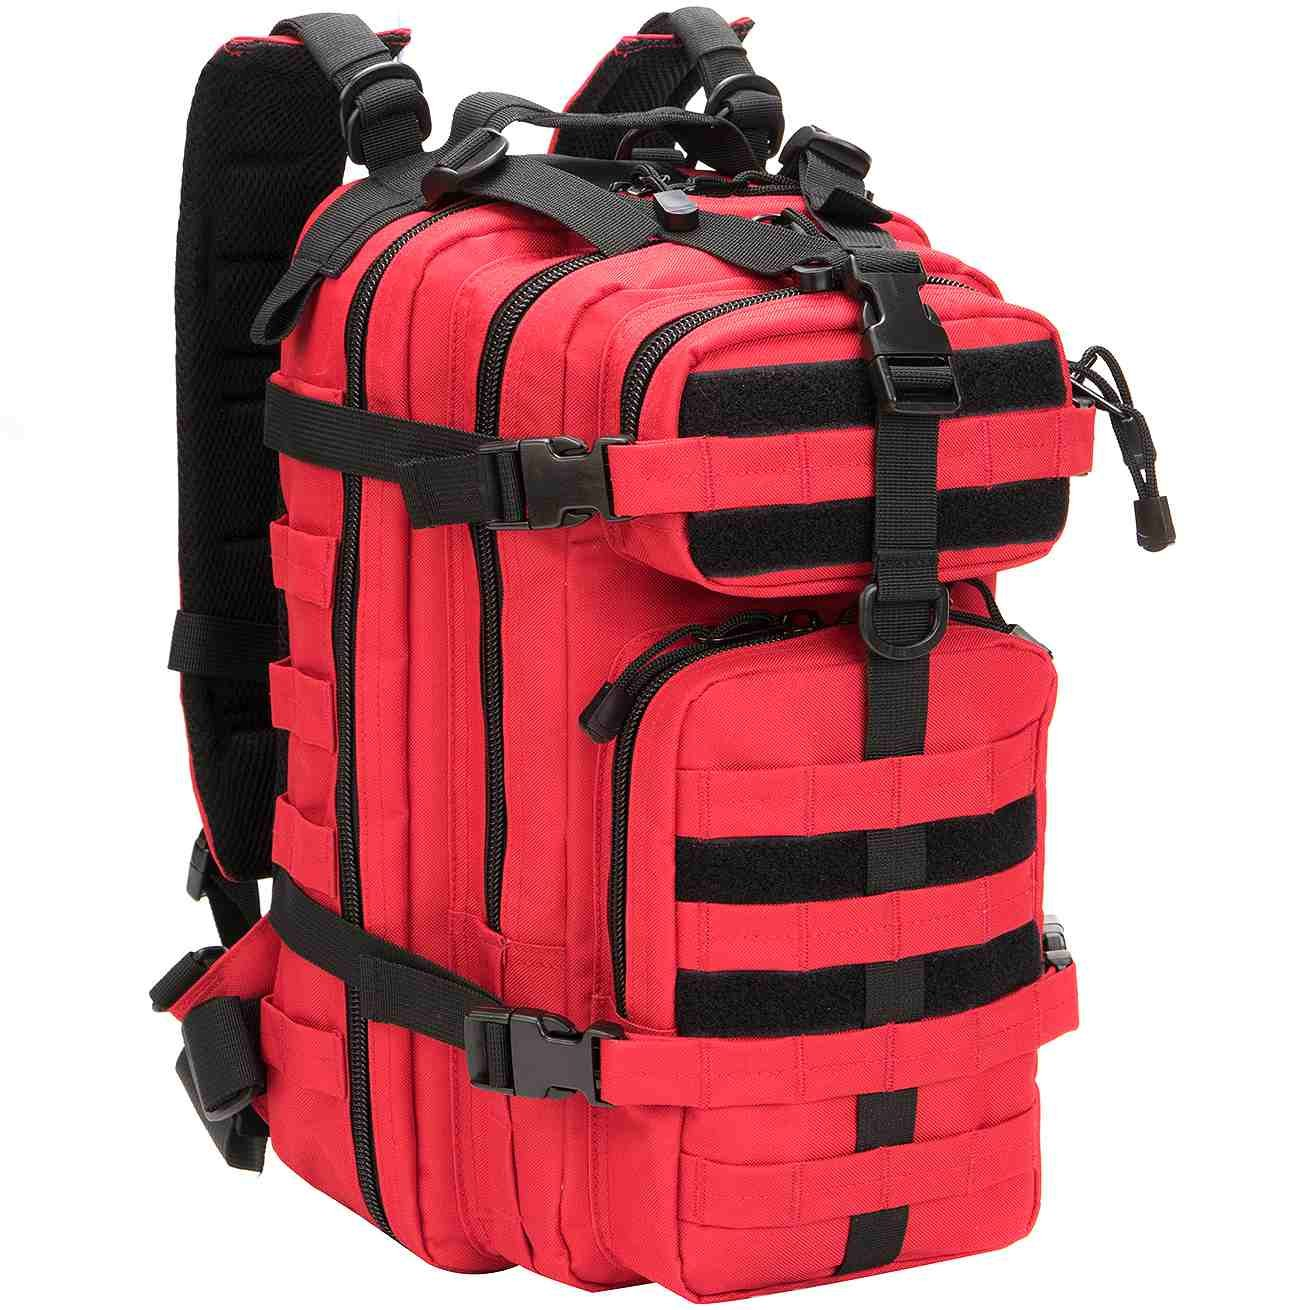 Red WolfWarriorX Small Military Tactical Assault Backpack Hiking Bag Extreme Water Resistant Rucksack Molle Bug Out Bag for Traveling, Camping, Trekking & Hiking